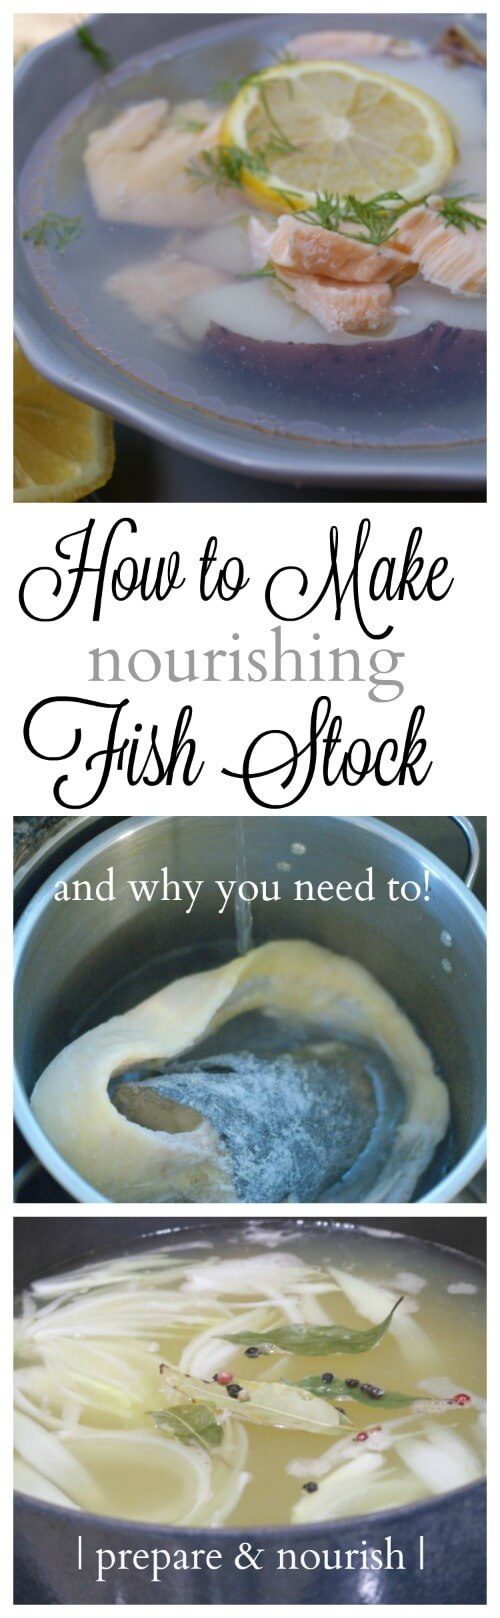 How to Make Nutritious Fish Stock - rich in vitamins and minerals this stock comes together in under 45 minutes.